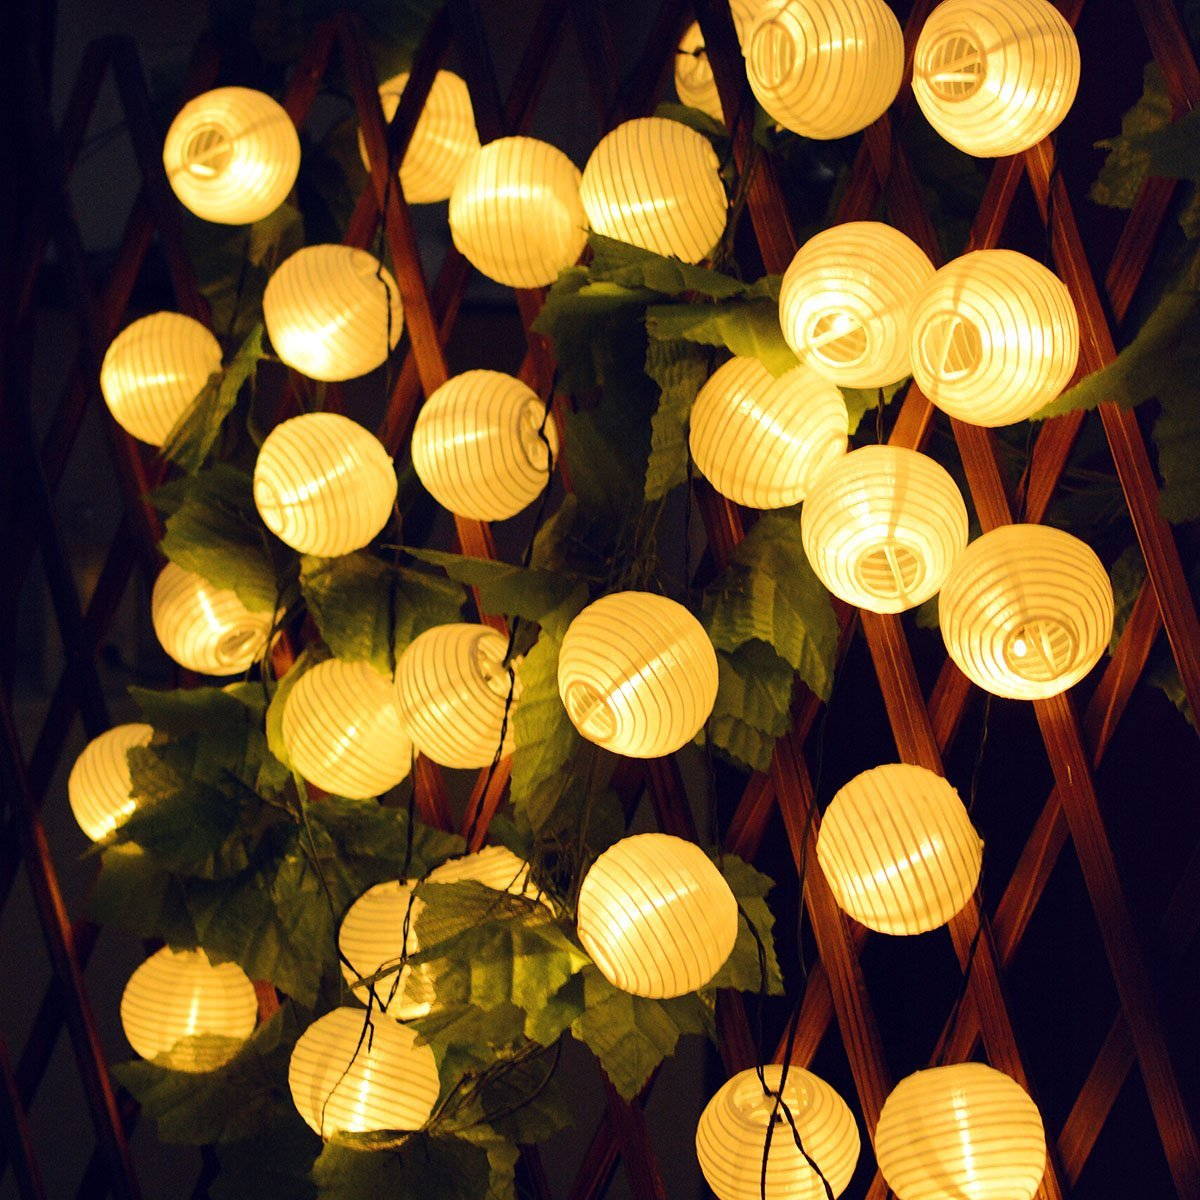 Solar lanterns string lights 30 led fabric ball fairy - Decorating with string lights indoors ...